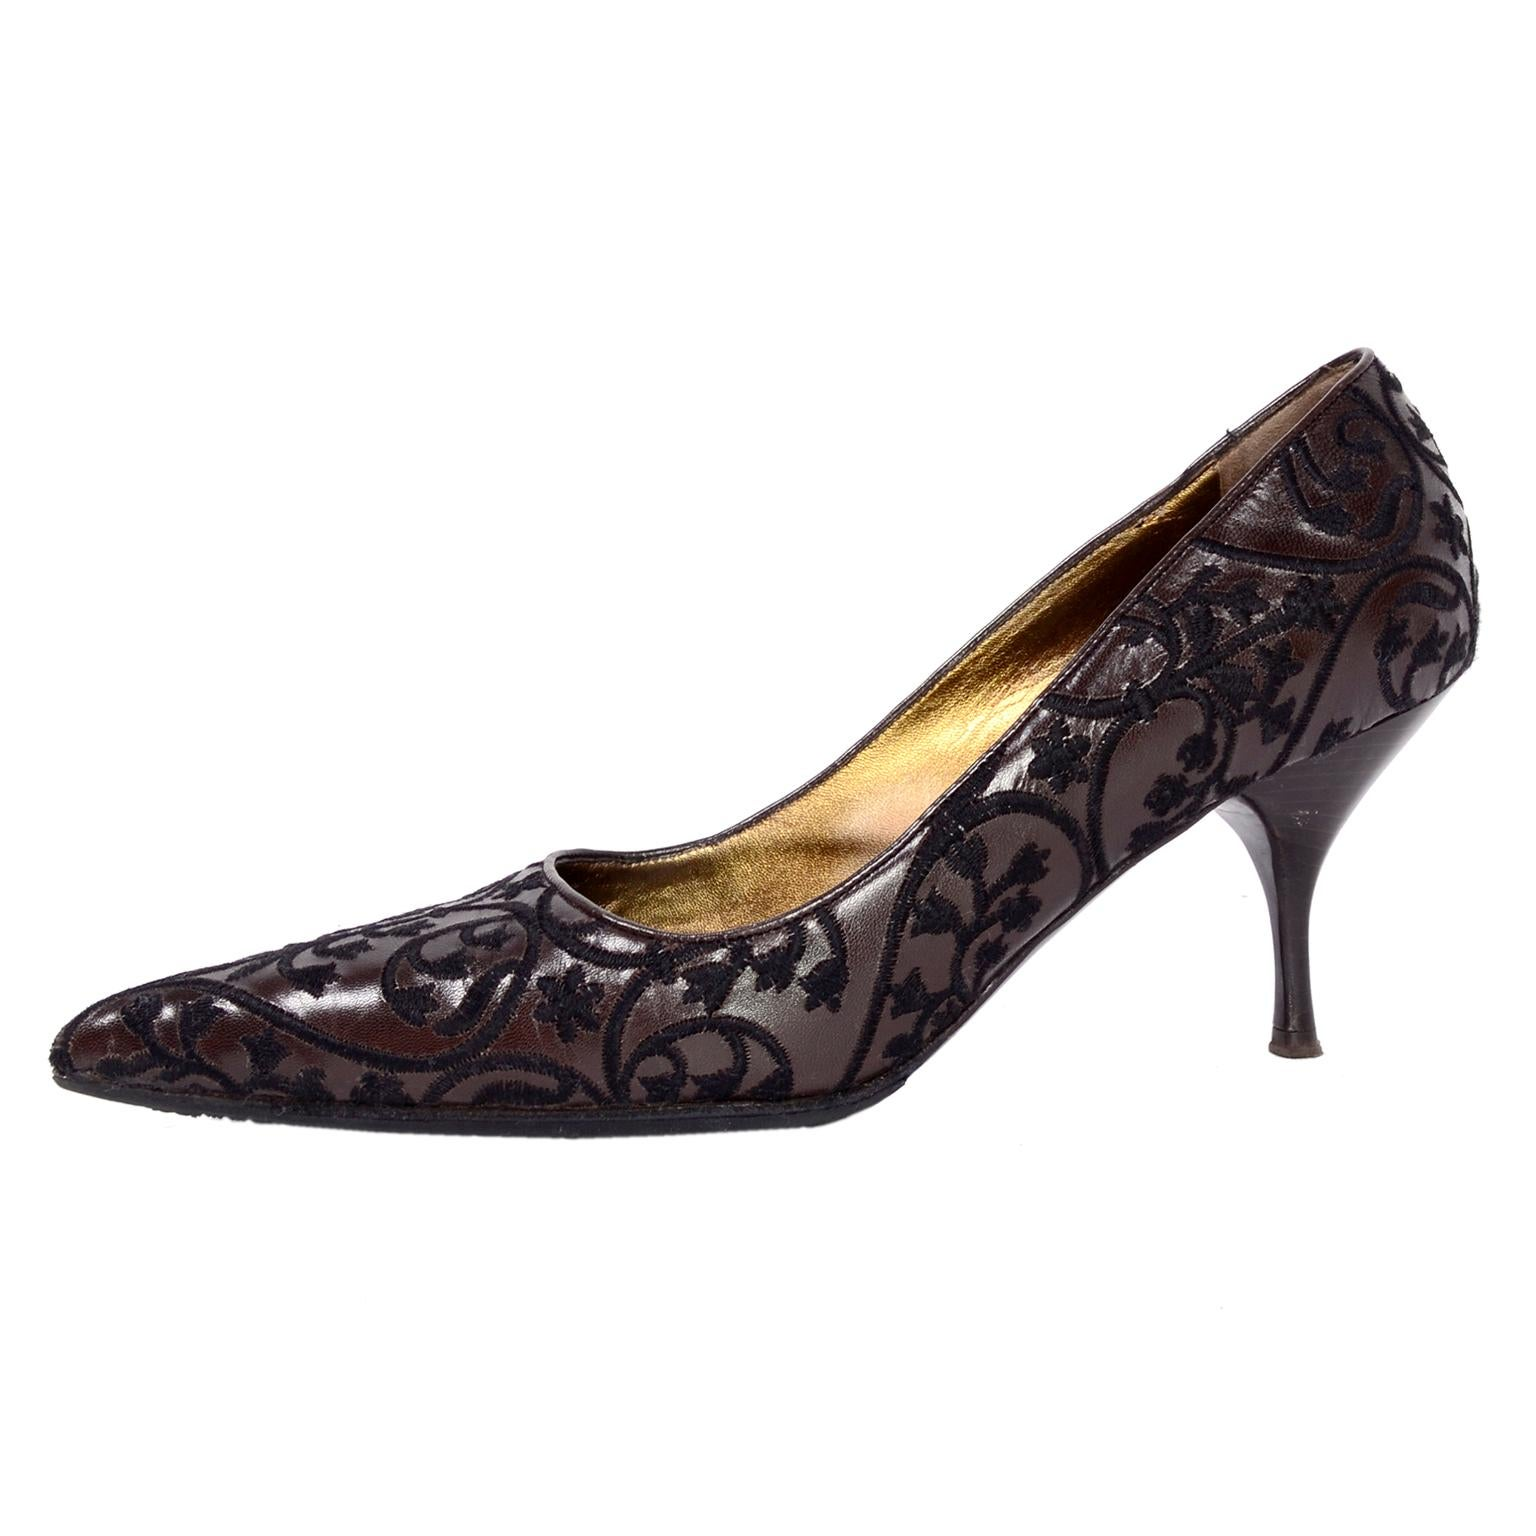 """Prada Embroidered Shoes in Dark Brown Leather Size 37.5 W 3"""" Heels"""